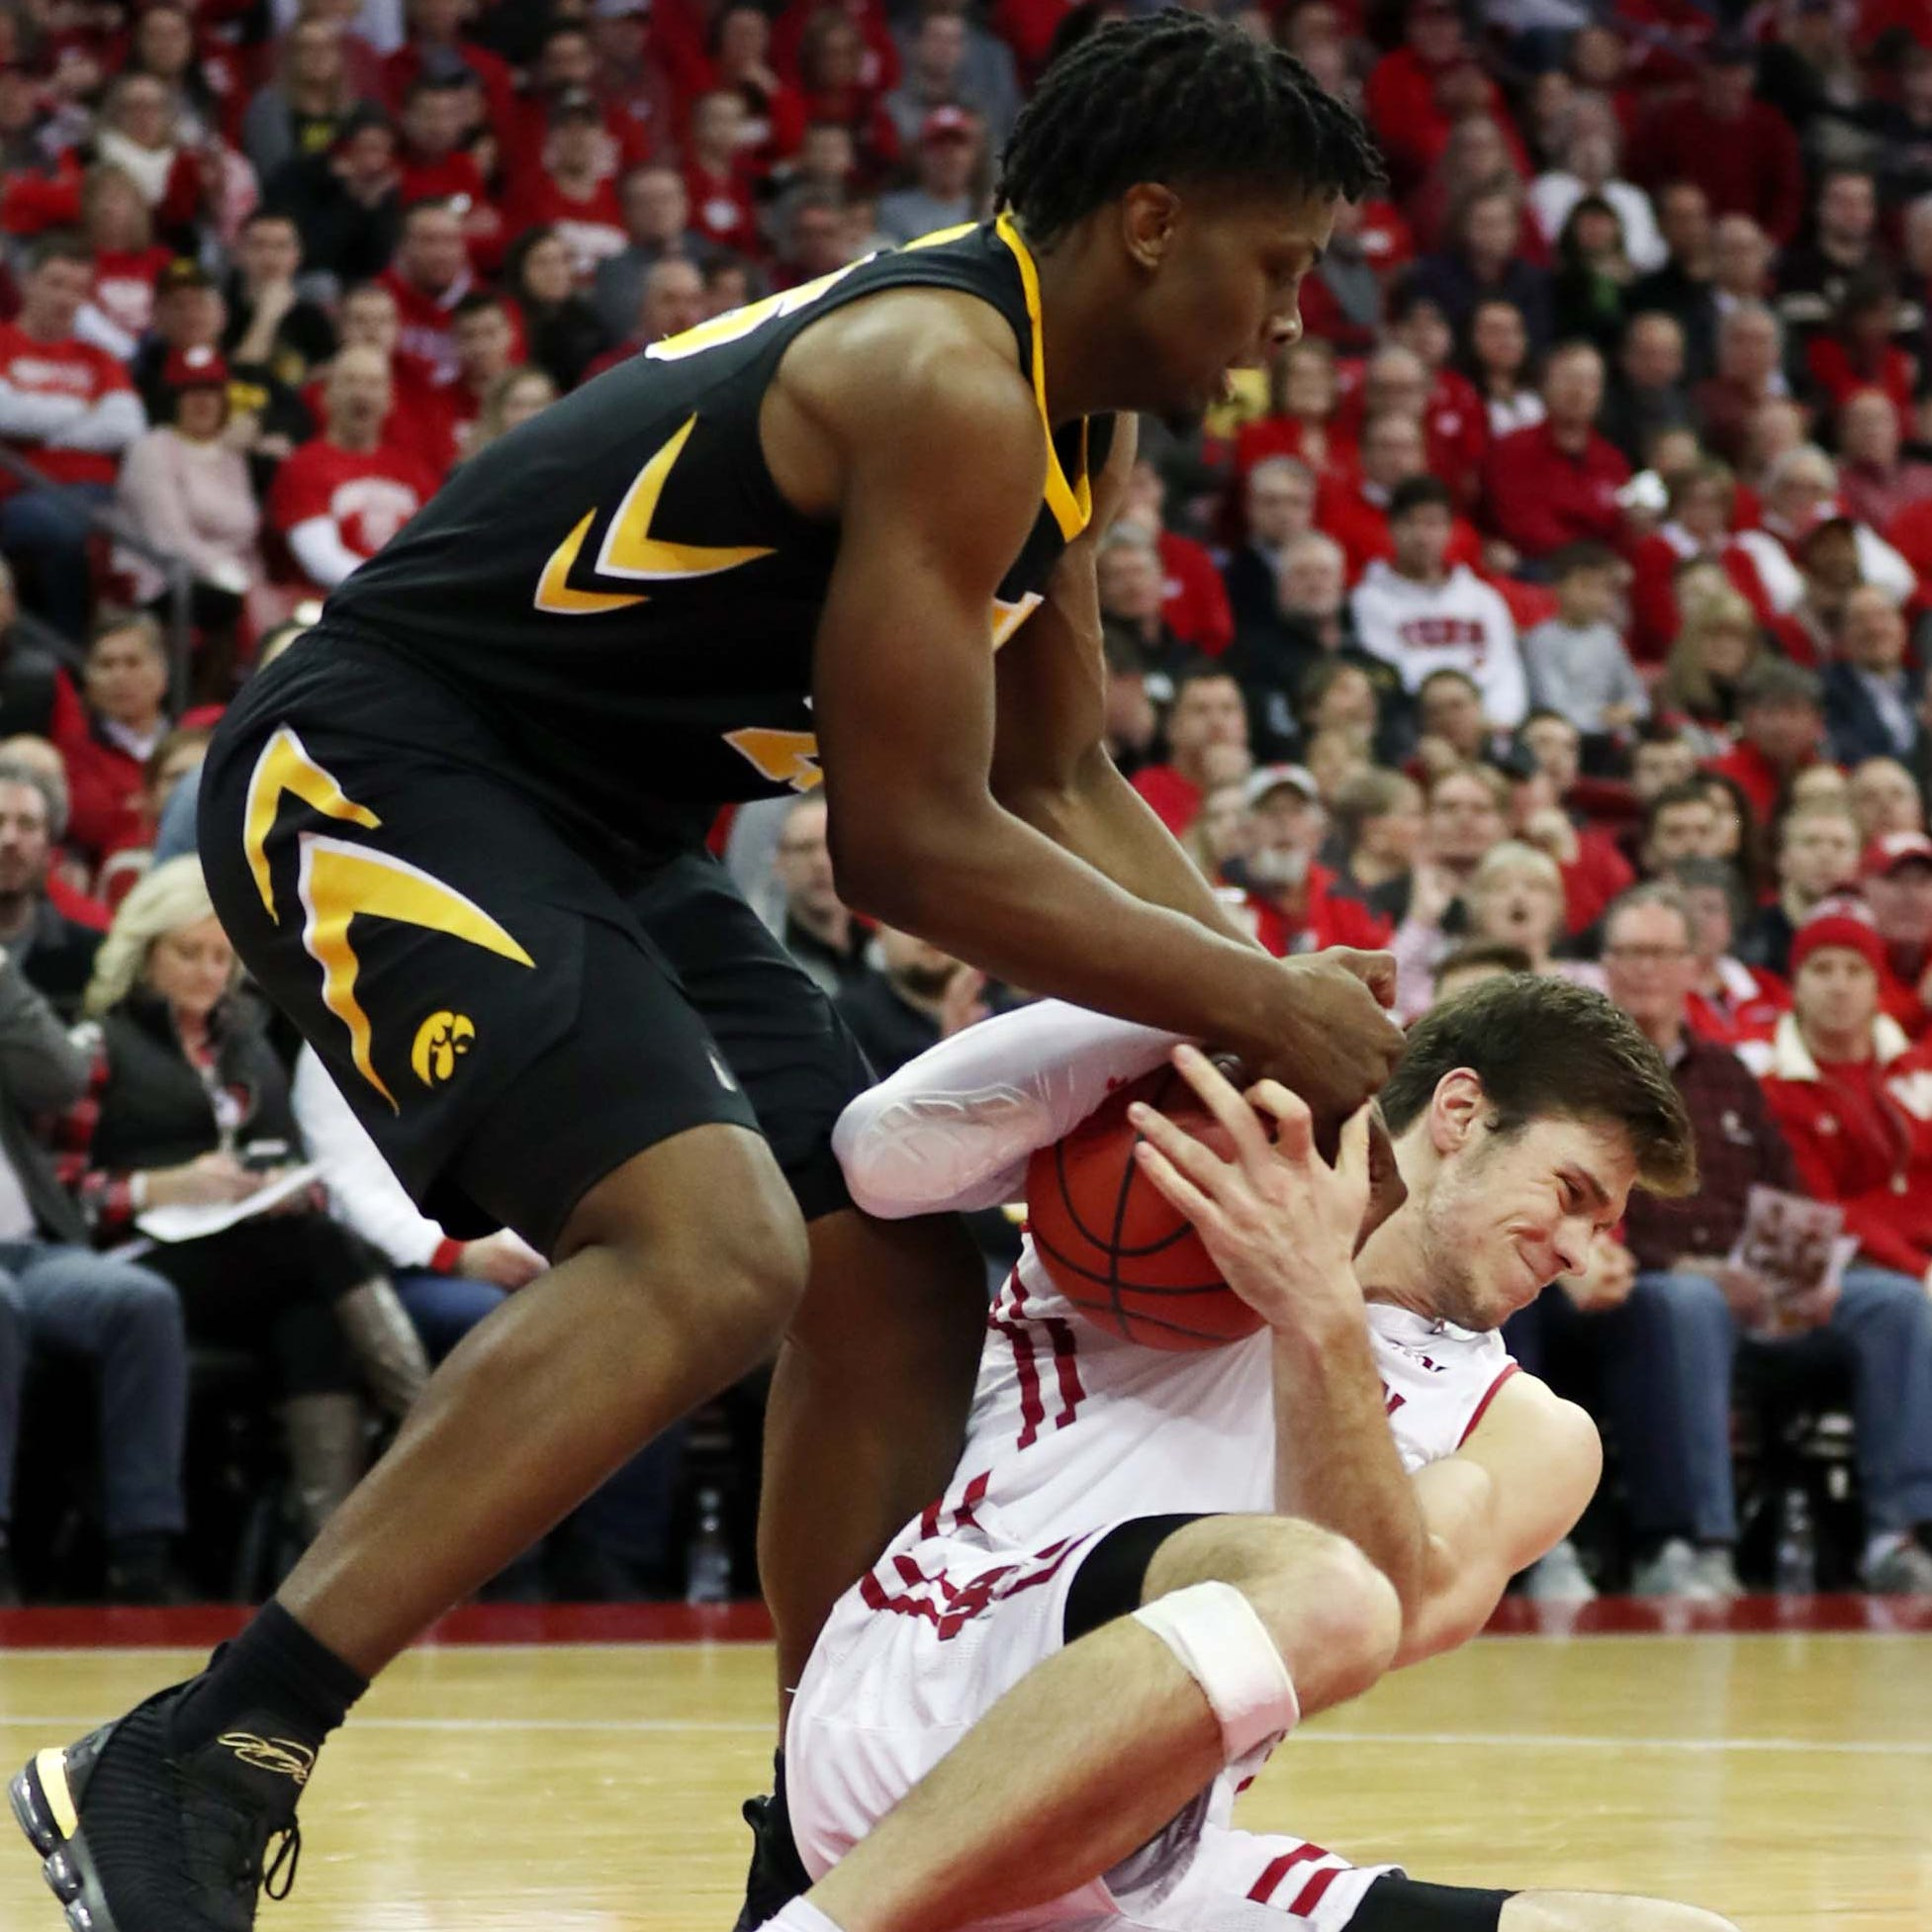 The stats tell the tale: Hawkeyes far too timid to beat Wisconsin